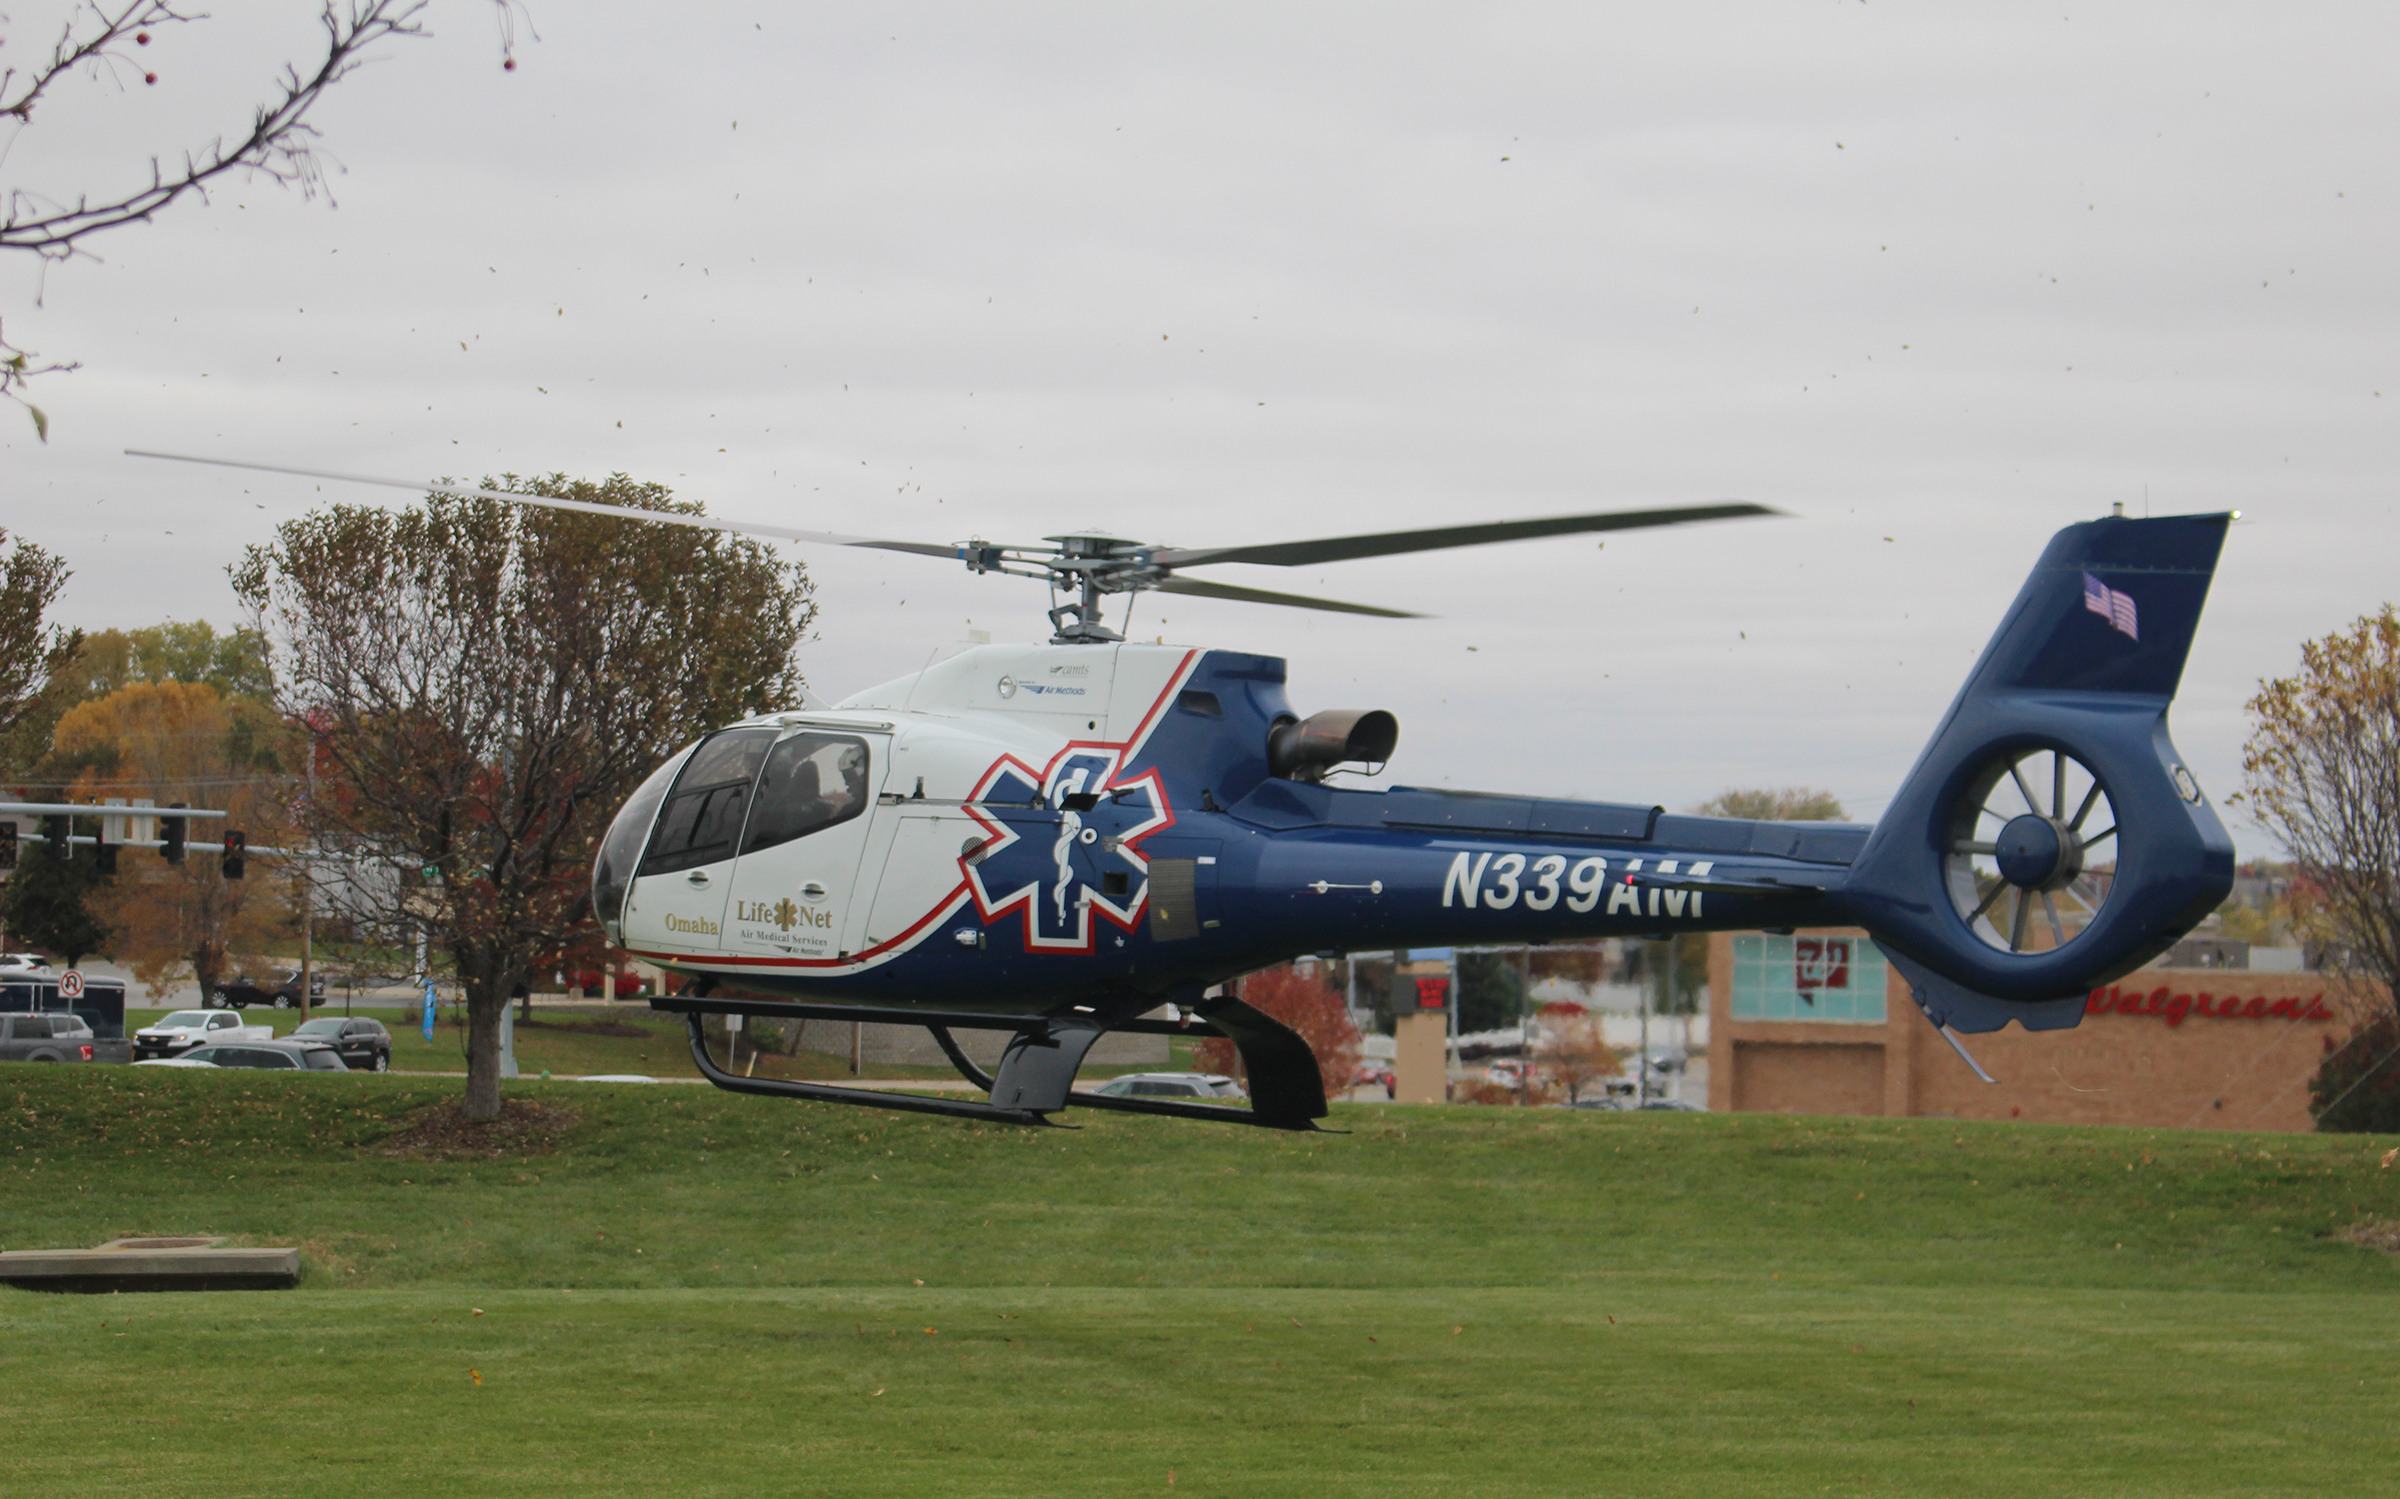 A LifeNet helicopter departs from an open house at the Douglas County Sheriff's Office on Saturday, Oct. 27, 2019. (Photo by Scott Stewart)